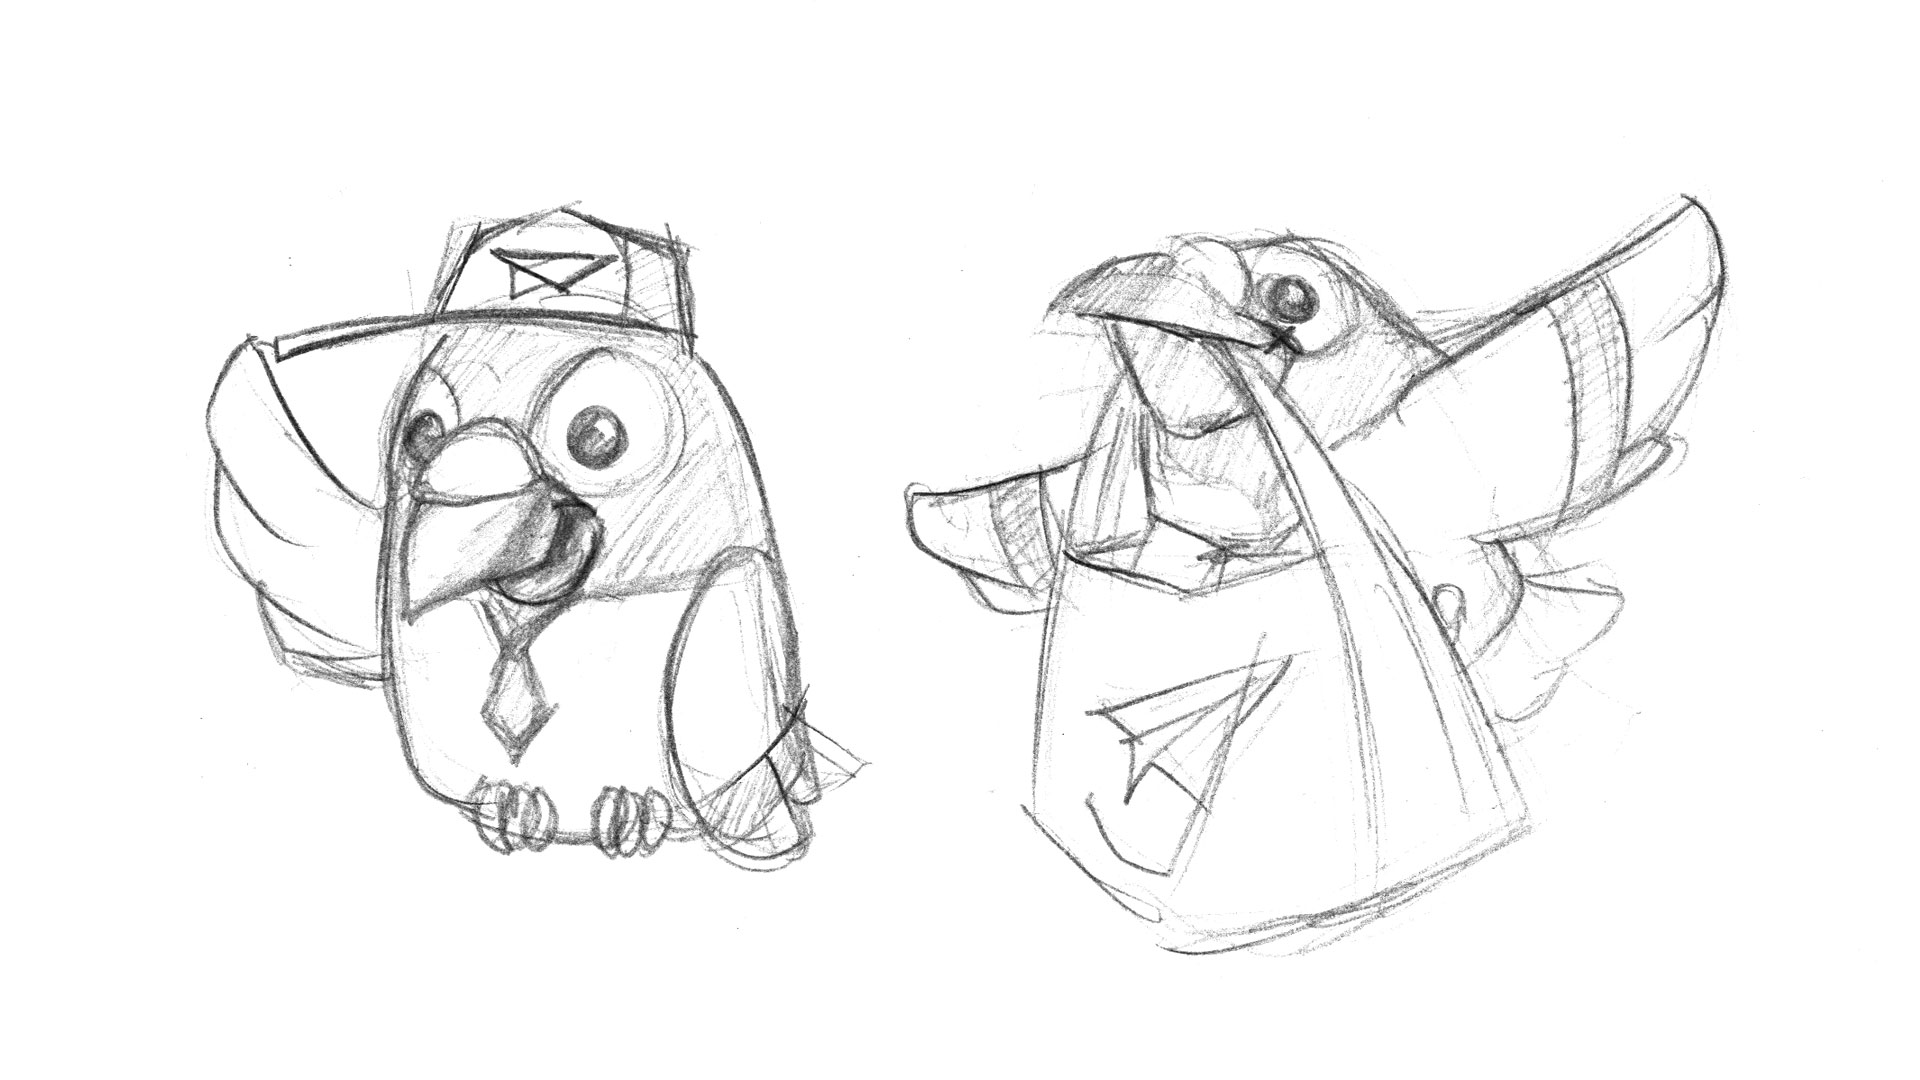 The earliest sketch of a possible pigeon mascot for Customer.io.